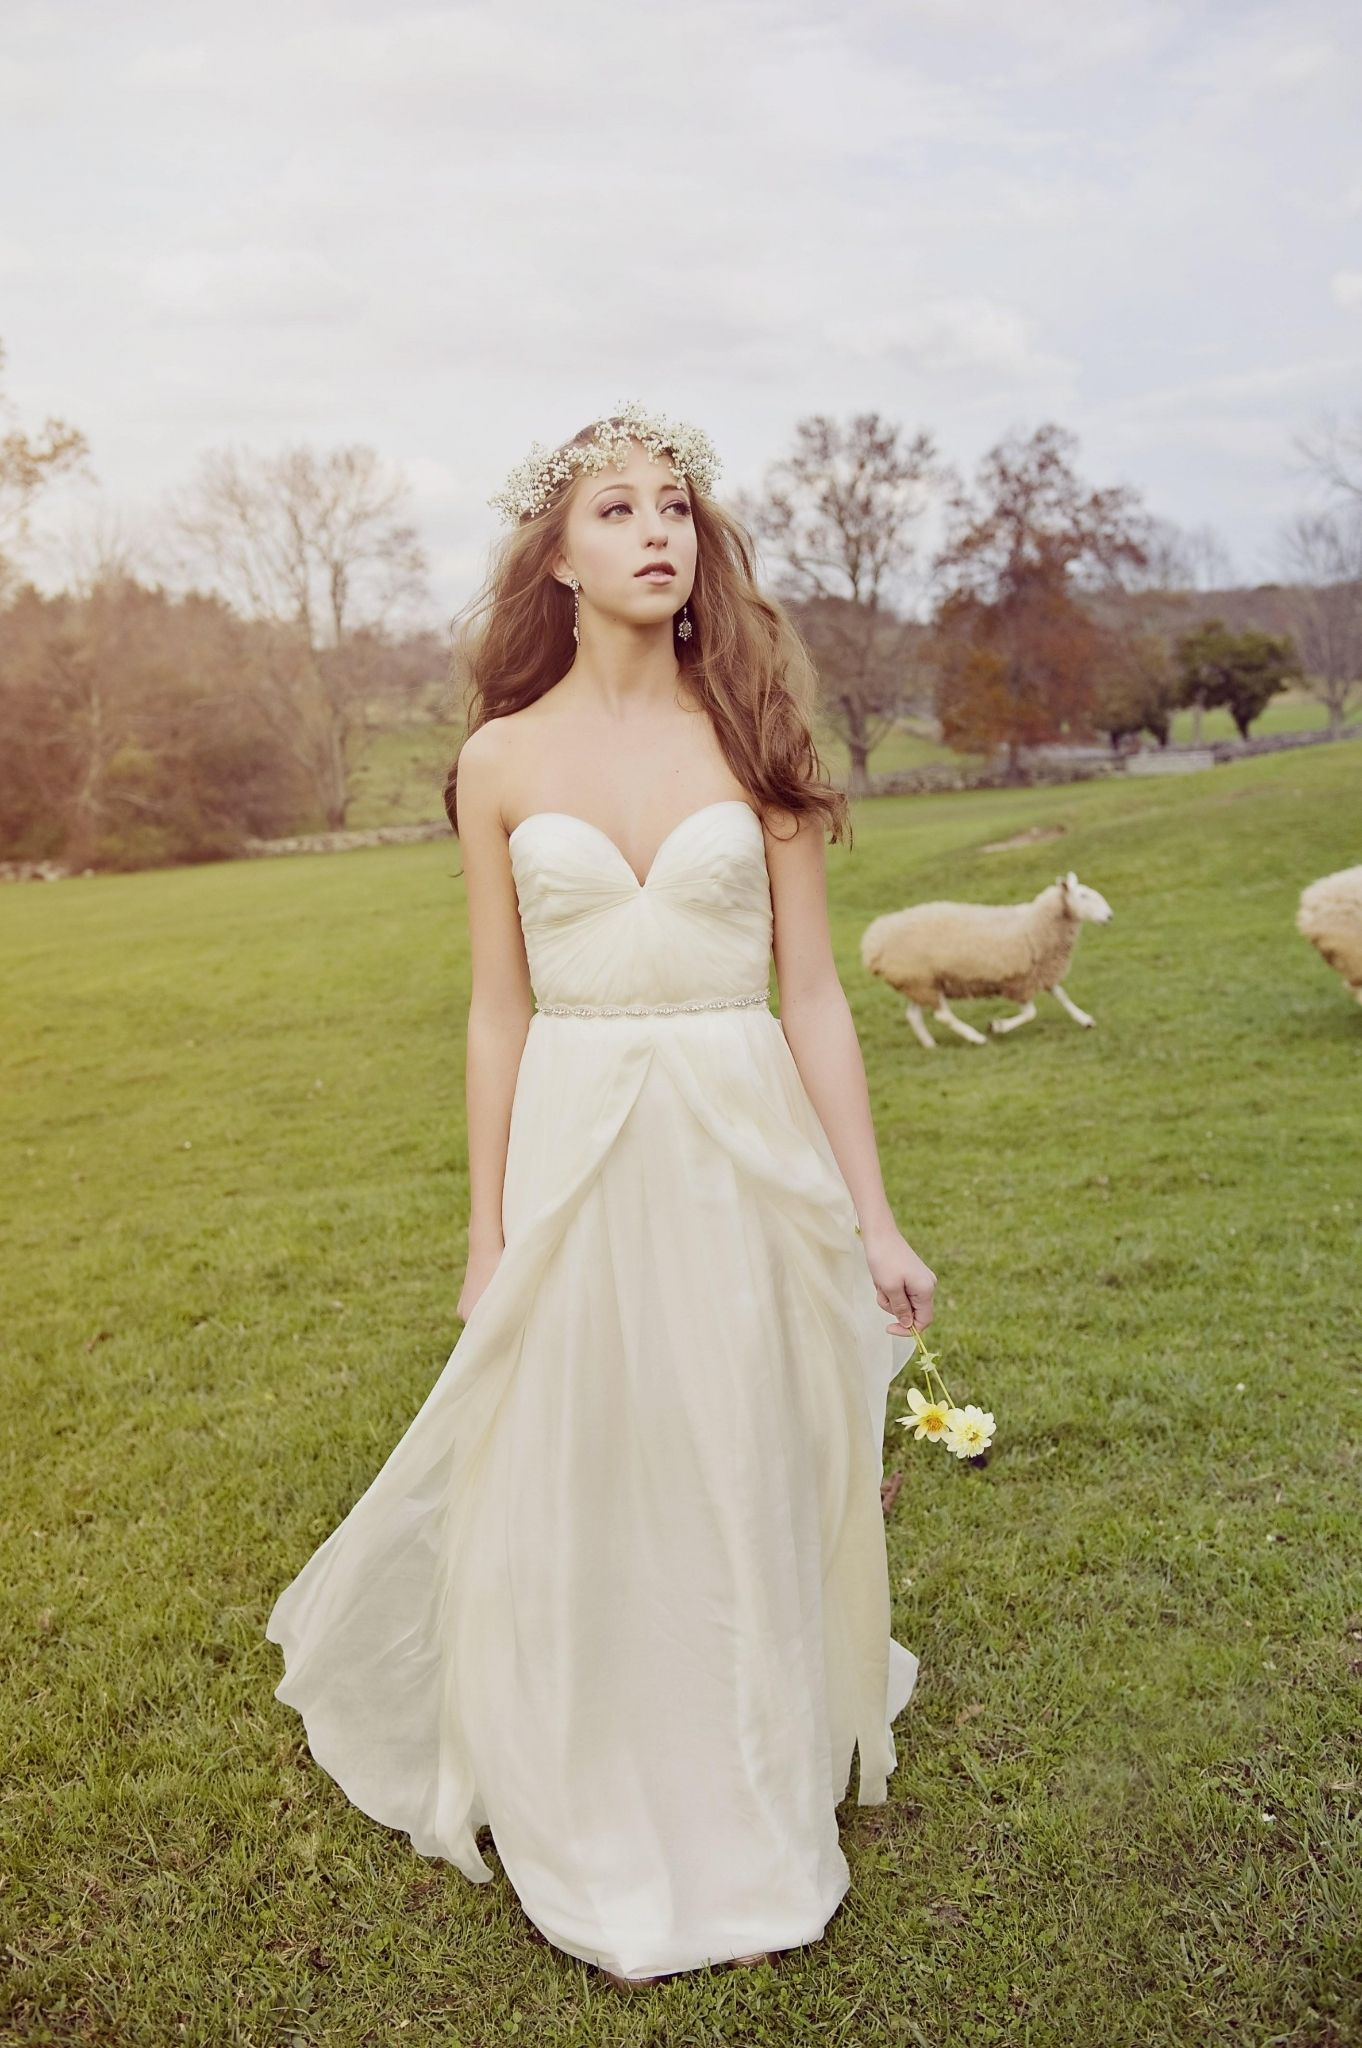 Charmant Rustic Outdoor Wedding Dresses   Wedding Dresses For Fall Check More At  Http://svesty.com/rustic Outdoor Wedding Dresses Wedding Dresses For Fall/